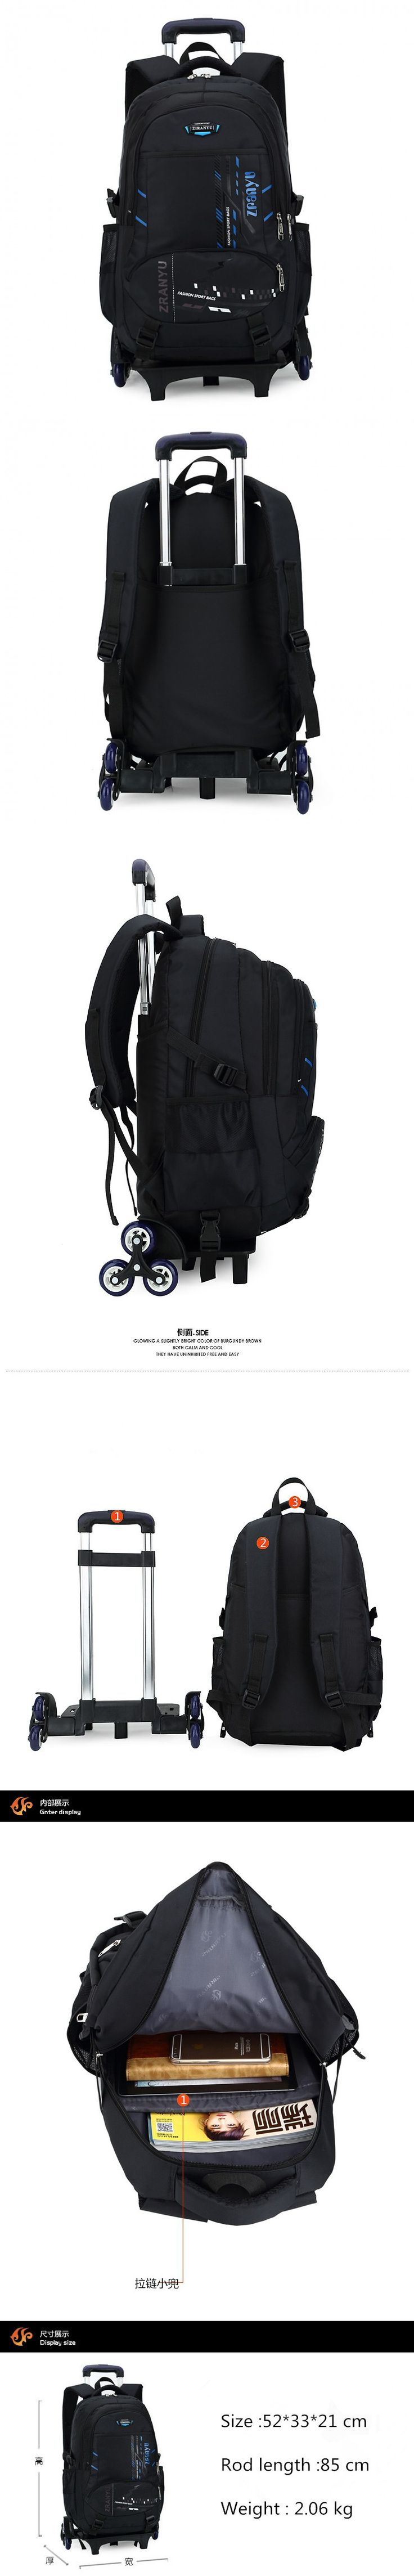 20 school bags with wheels ideas on pinterest without signing